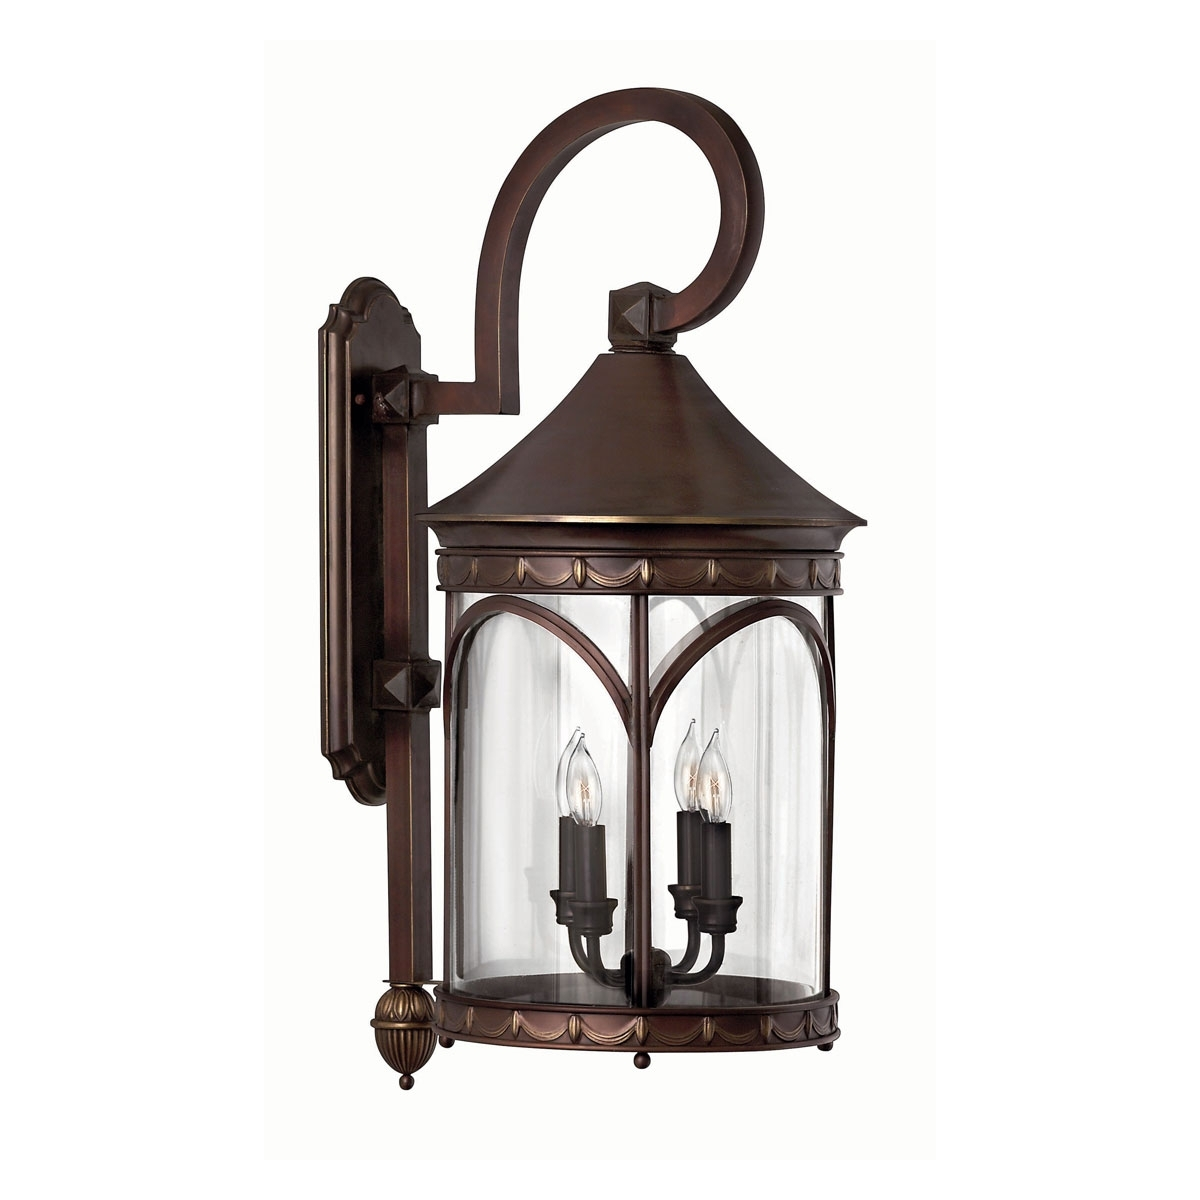 2315Cb – Large Wall Outdoor Light, 30 Inch, Lucerne Copper Bronze Throughout Best And Newest Large Outdoor Wall Light Fixtures (View 5 of 20)